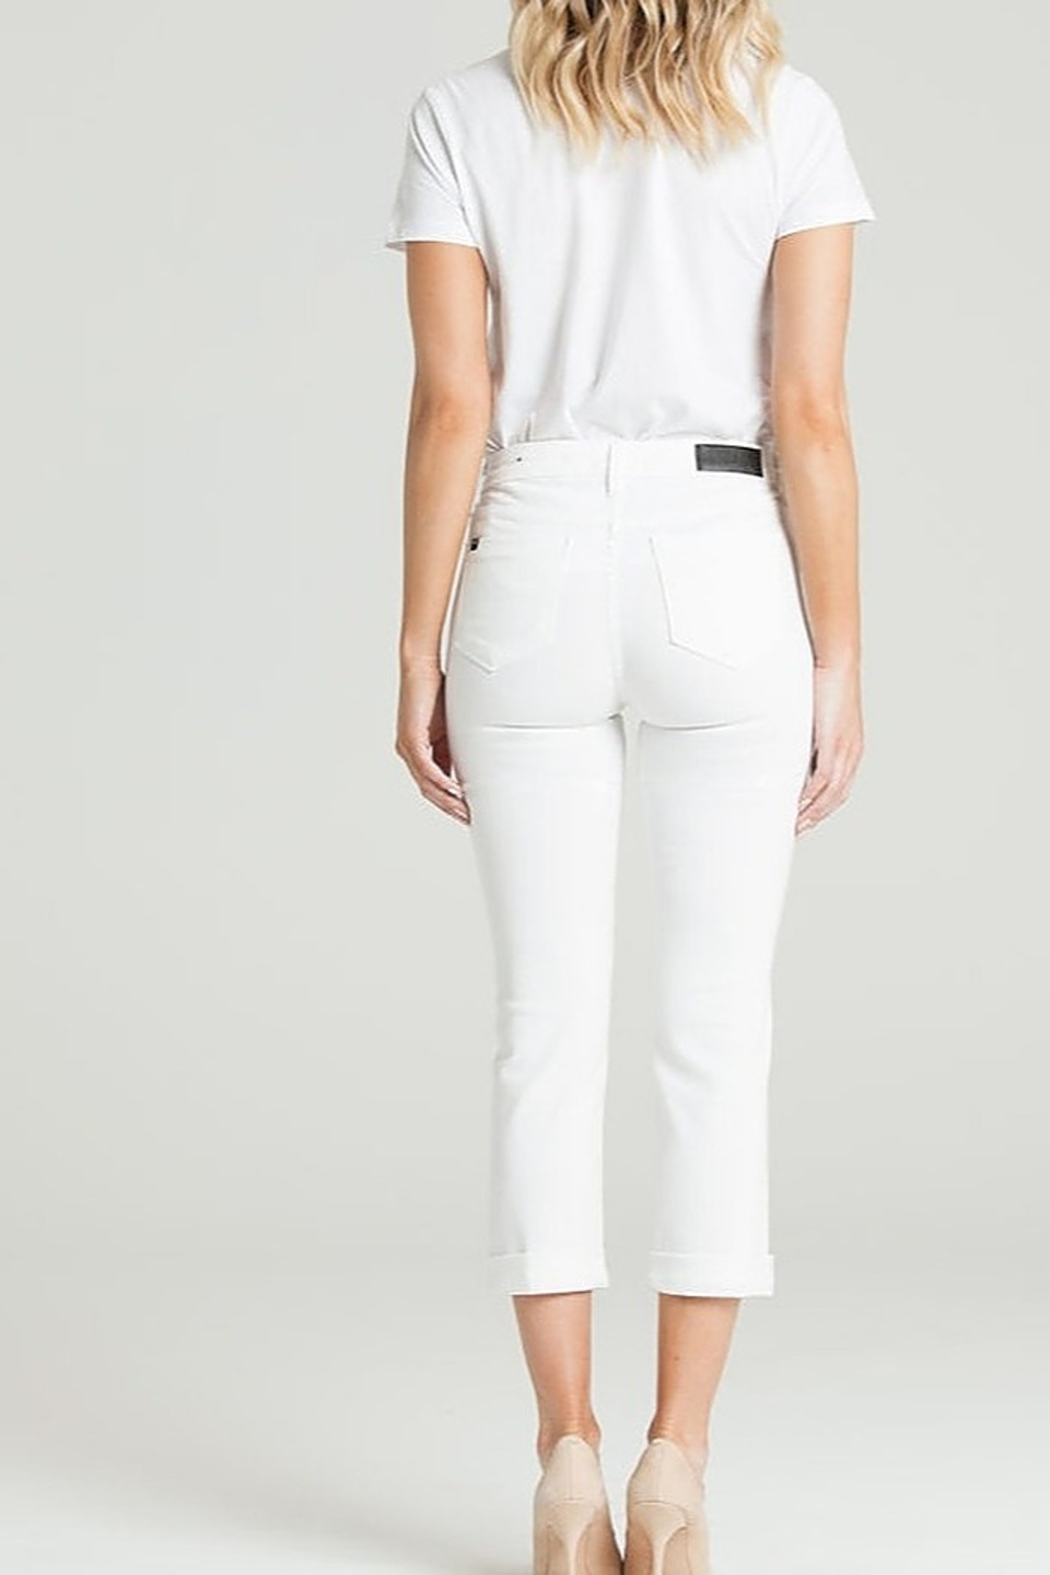 Parker Smith  CUFFED CROP WHITE JEAN - Front Full Image